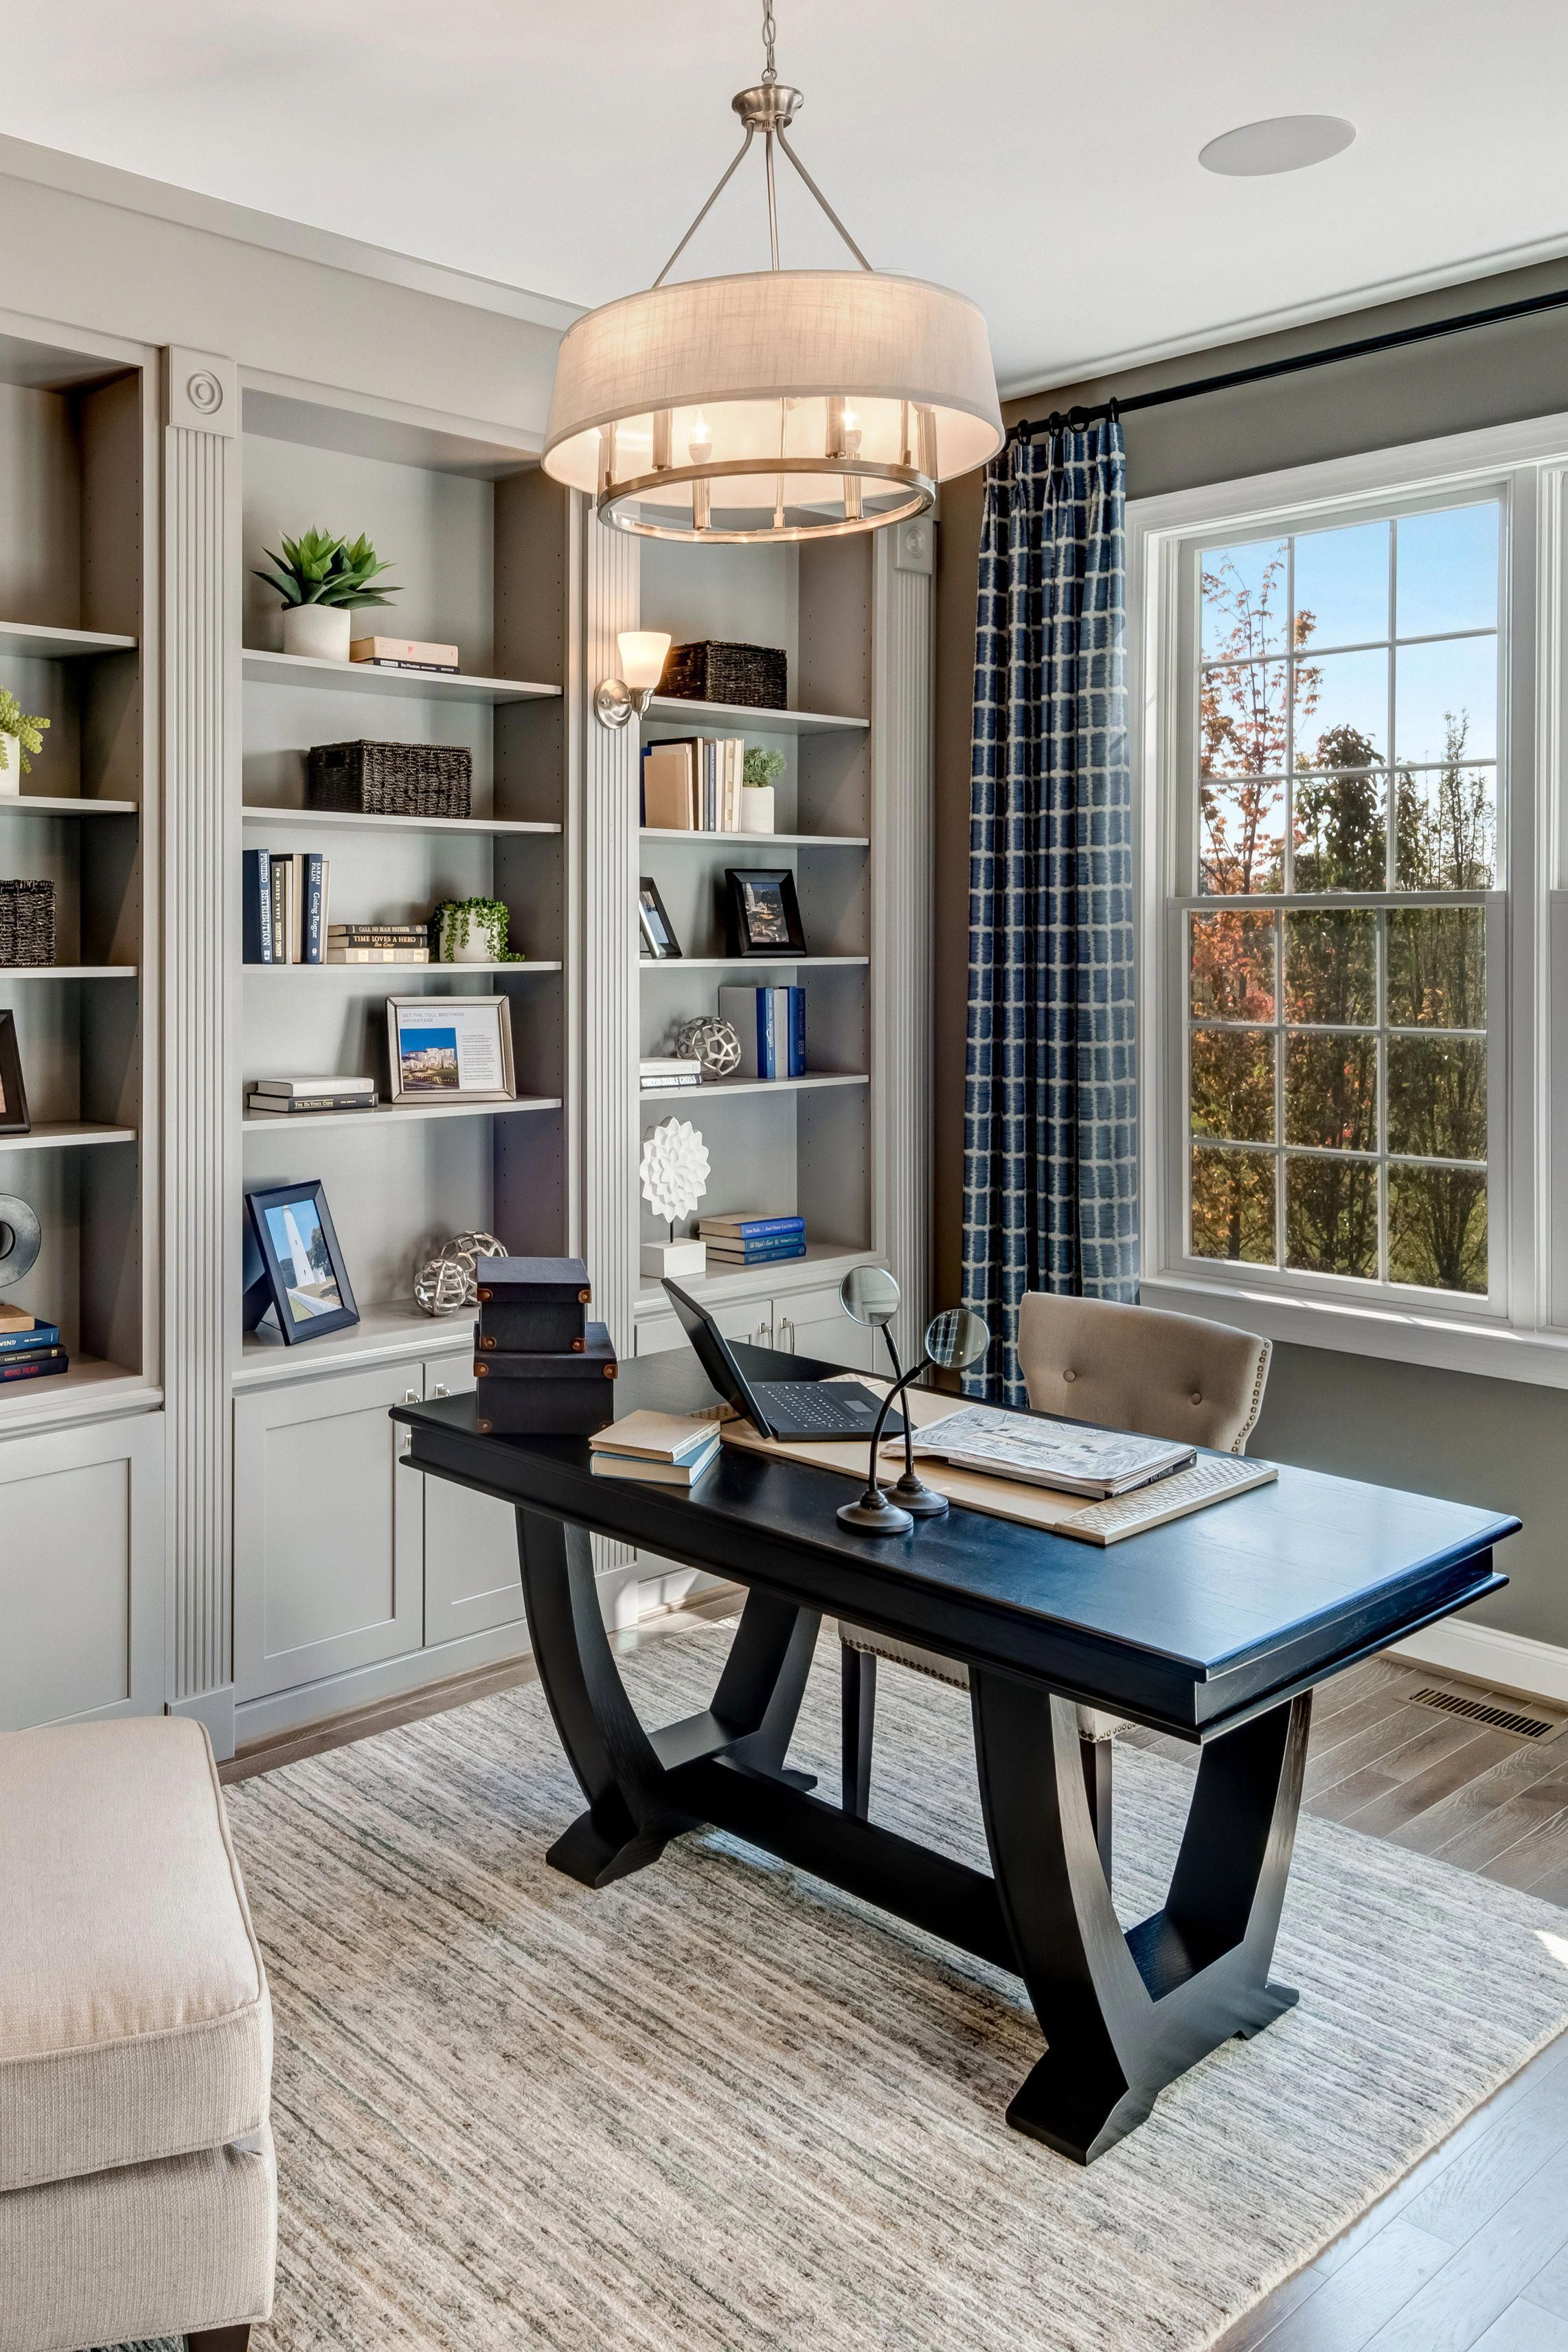 7 beautiful home desk ideas make comfortable for cozy on beautiful home desk organization ideas make comfortable what it will do for you id=41574